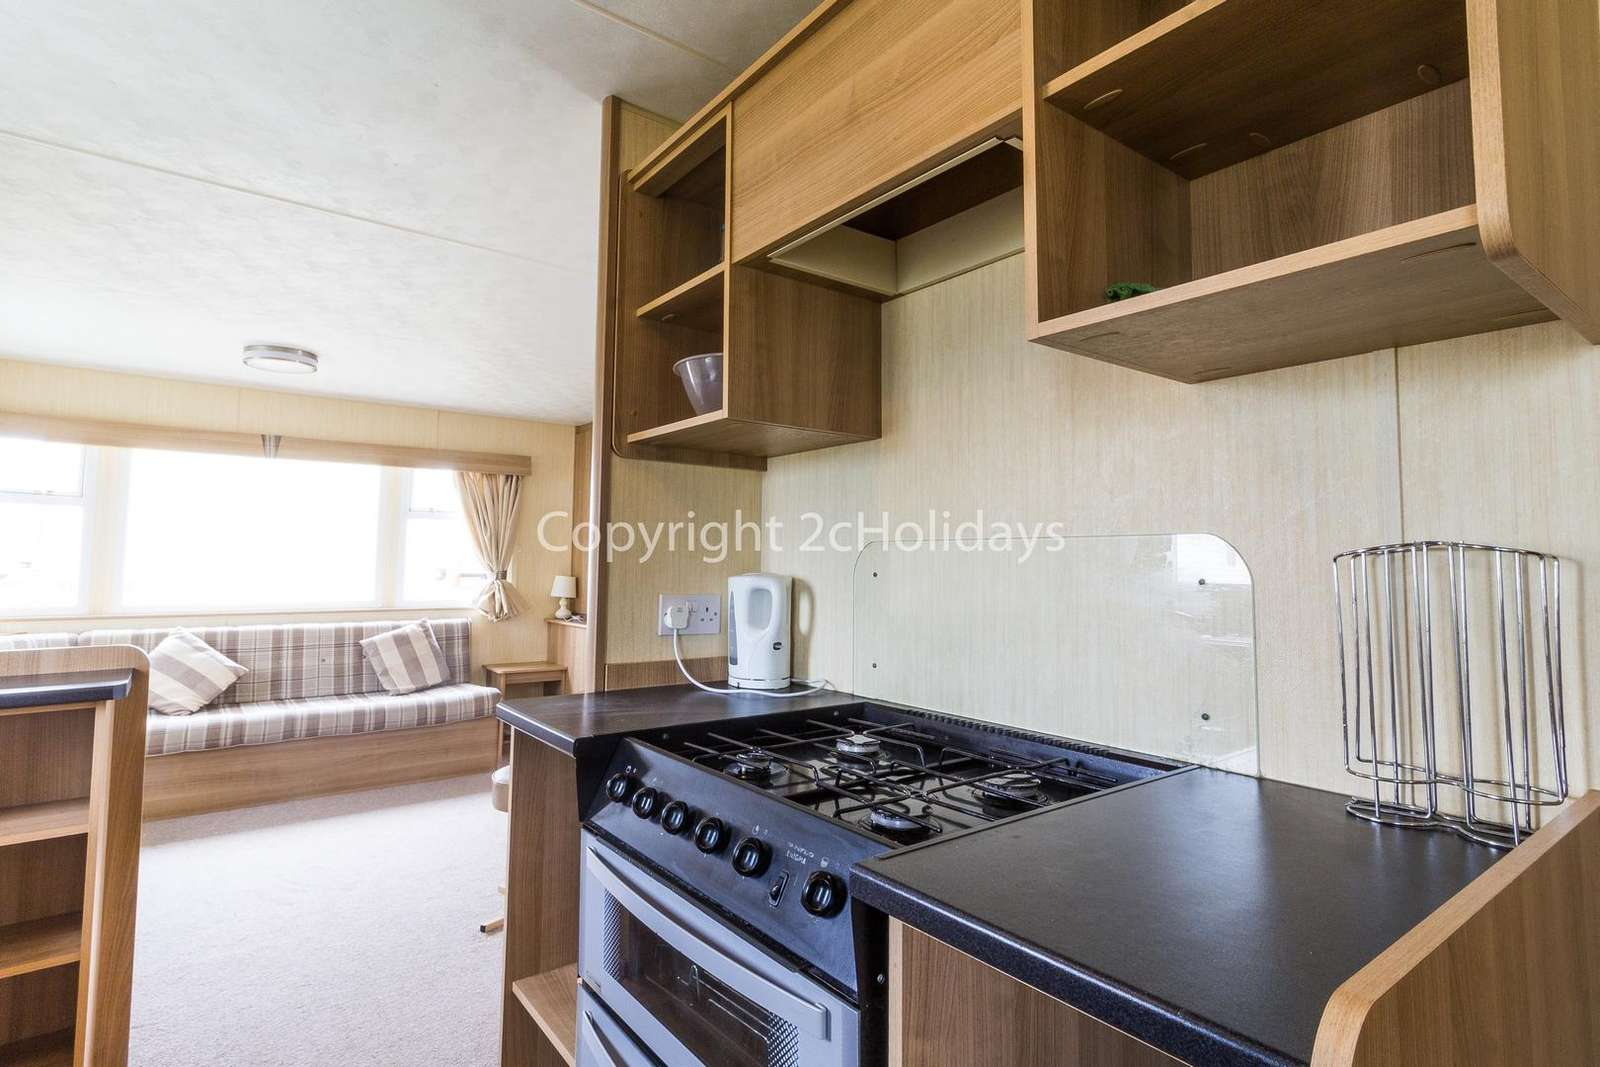 Full size cook for your self-catering holiday!